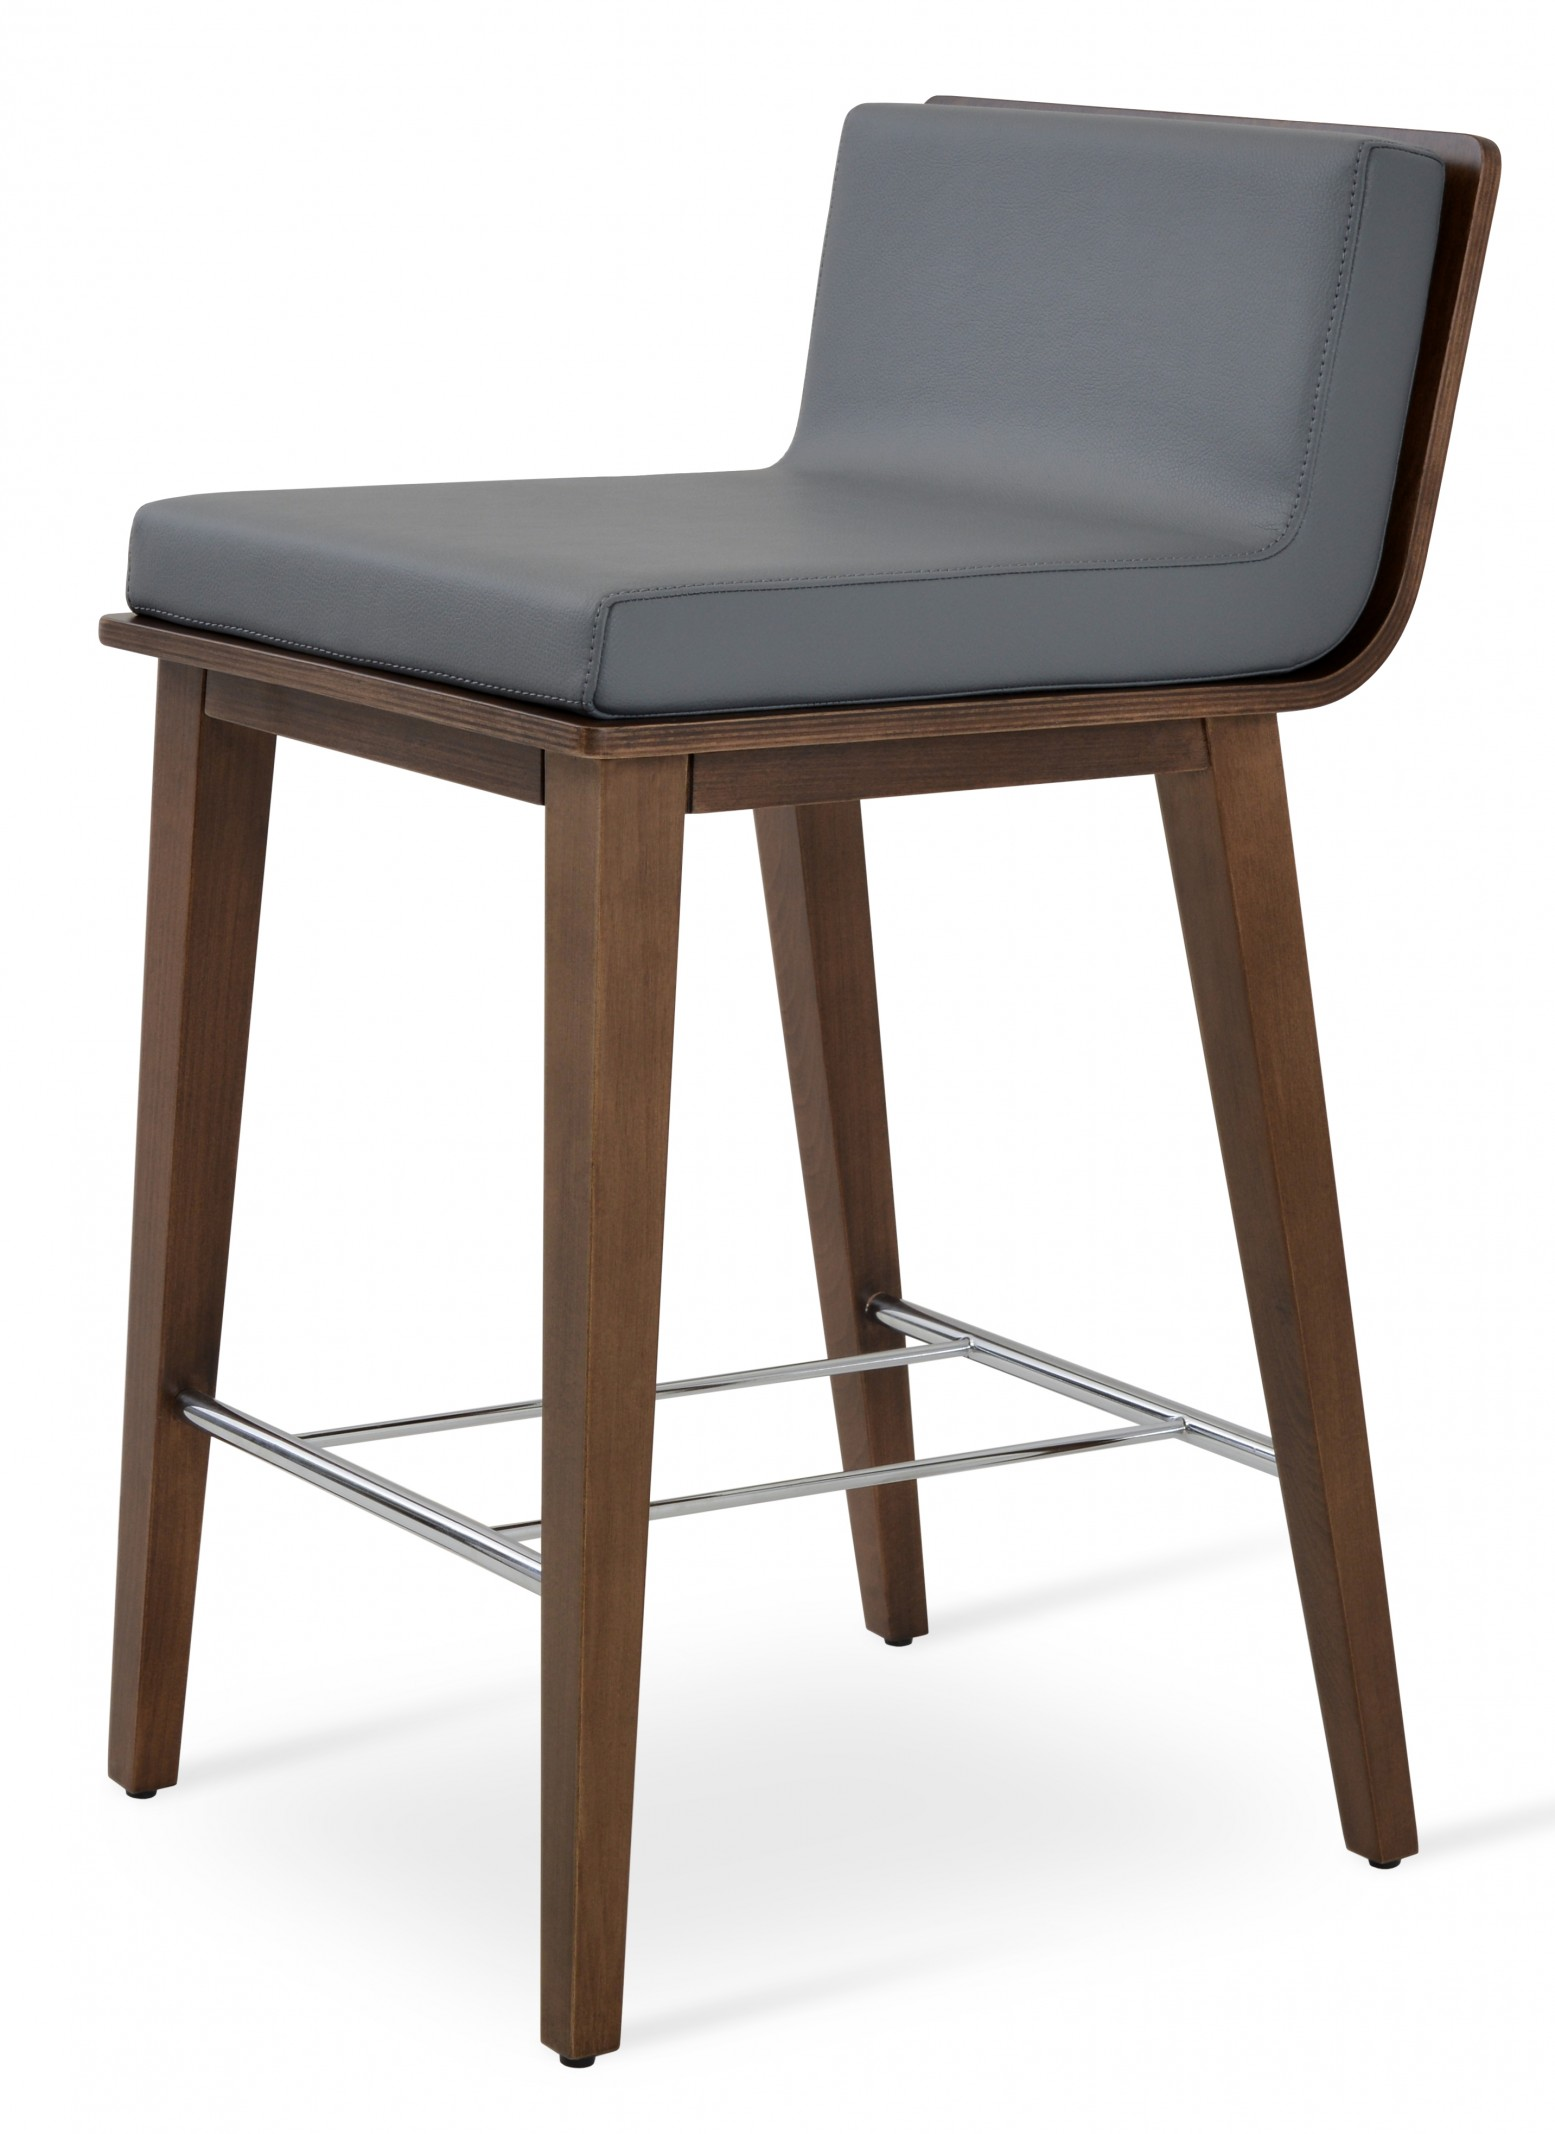 Pleasing Corona Wood Counter Stool Plywood Walnut Finish Grey Leatherette Dallas Seat Andrewgaddart Wooden Chair Designs For Living Room Andrewgaddartcom